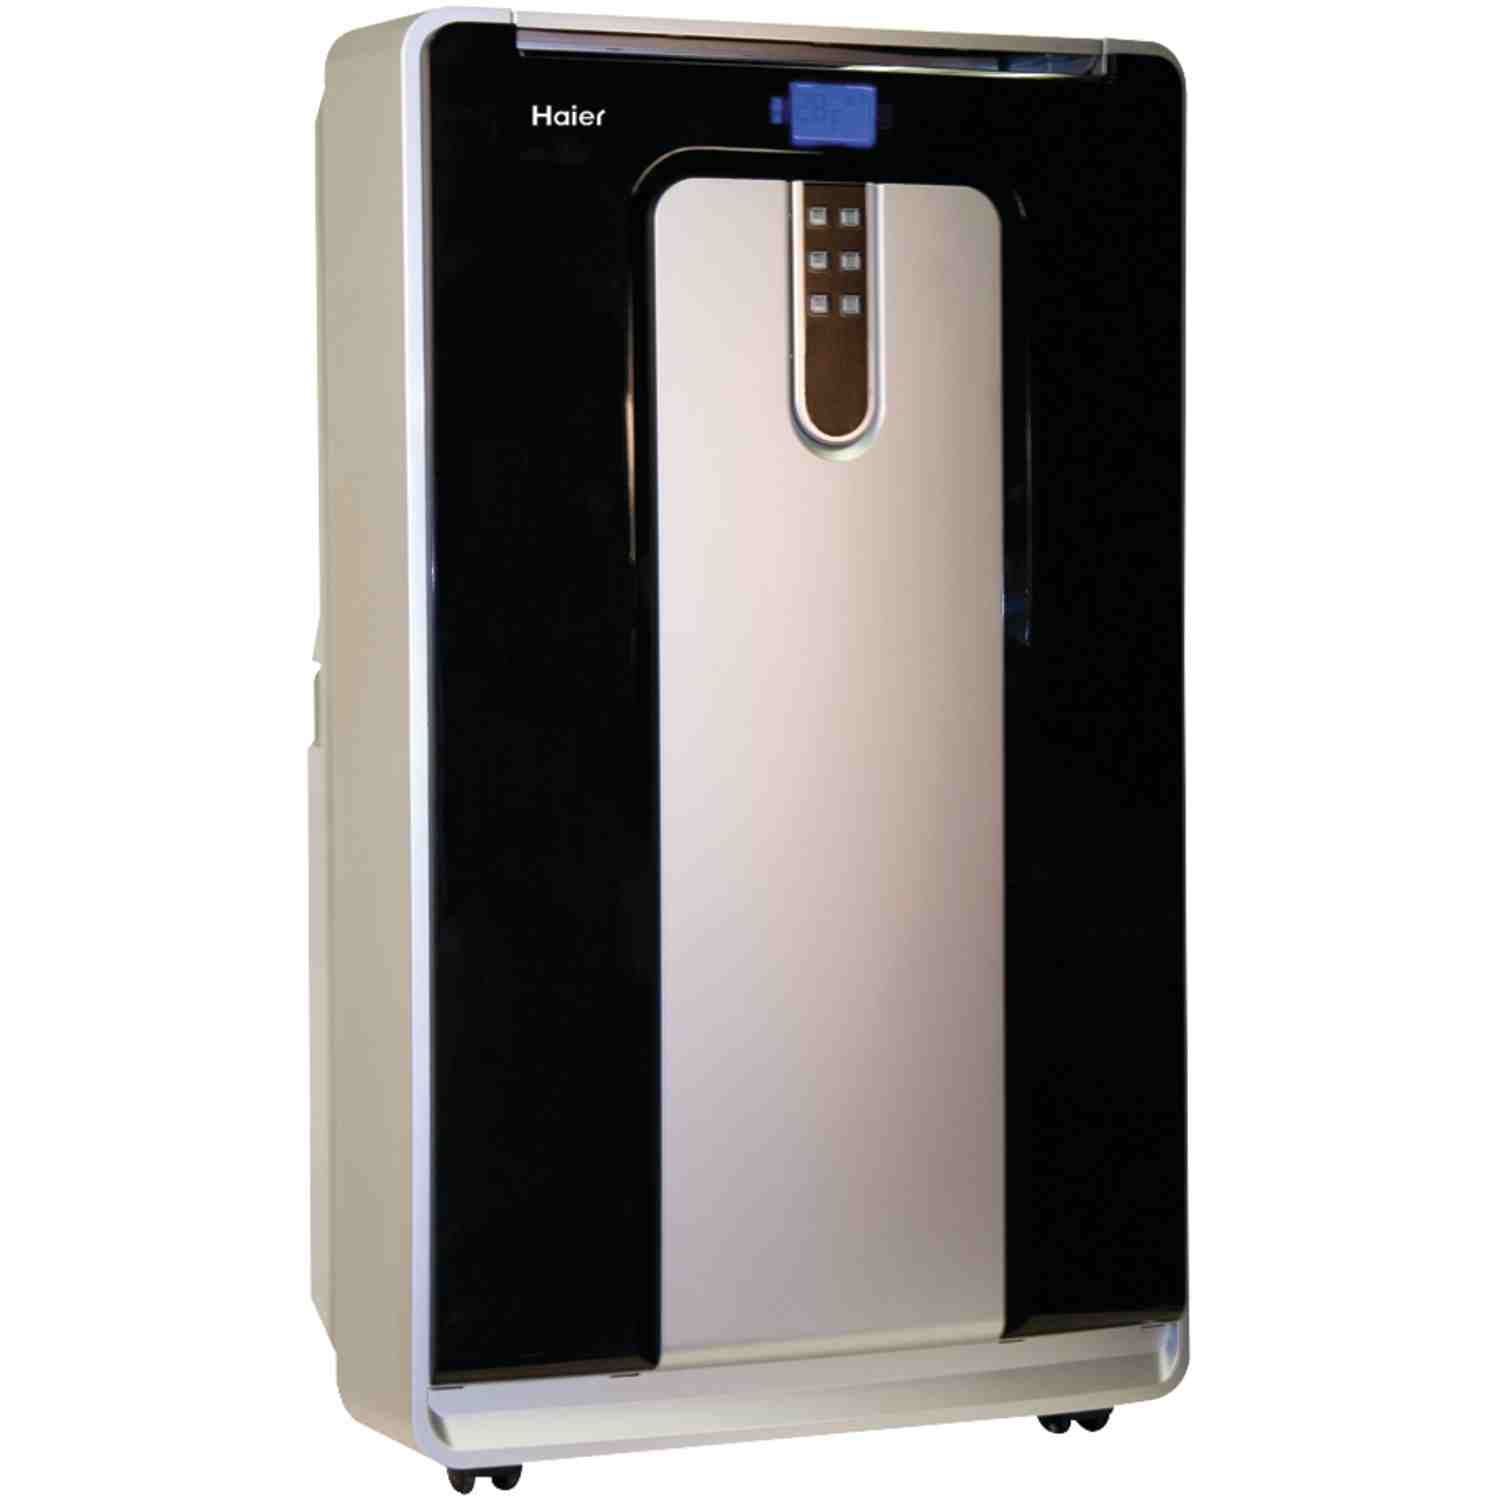 Portable Air Conditioners : Haier portable air conditioner review hpn xcm best